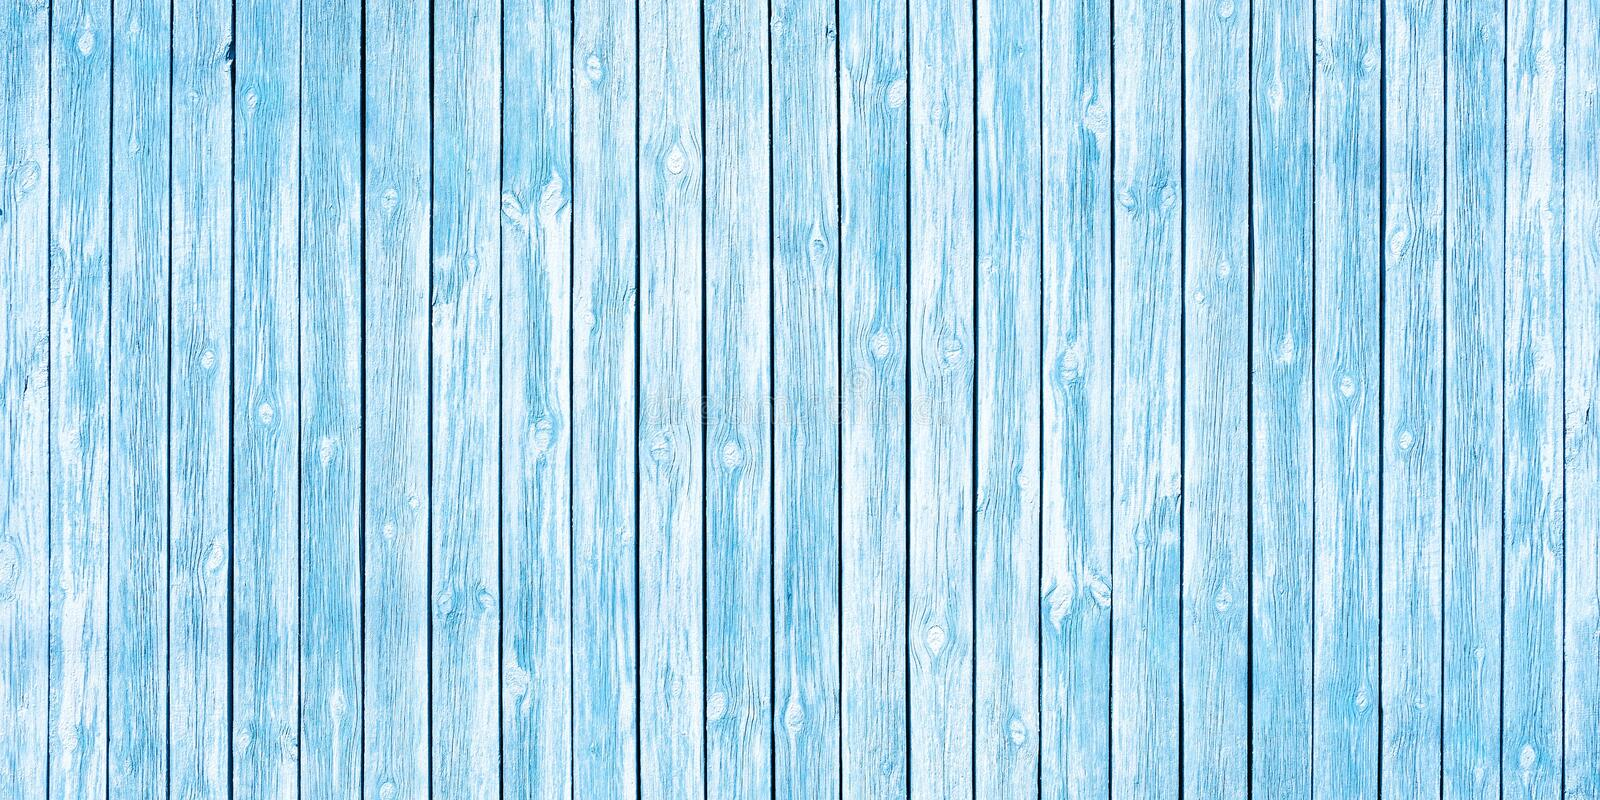 Shabby chic background of old wooden planks painted in soft blue royalty free stock photos